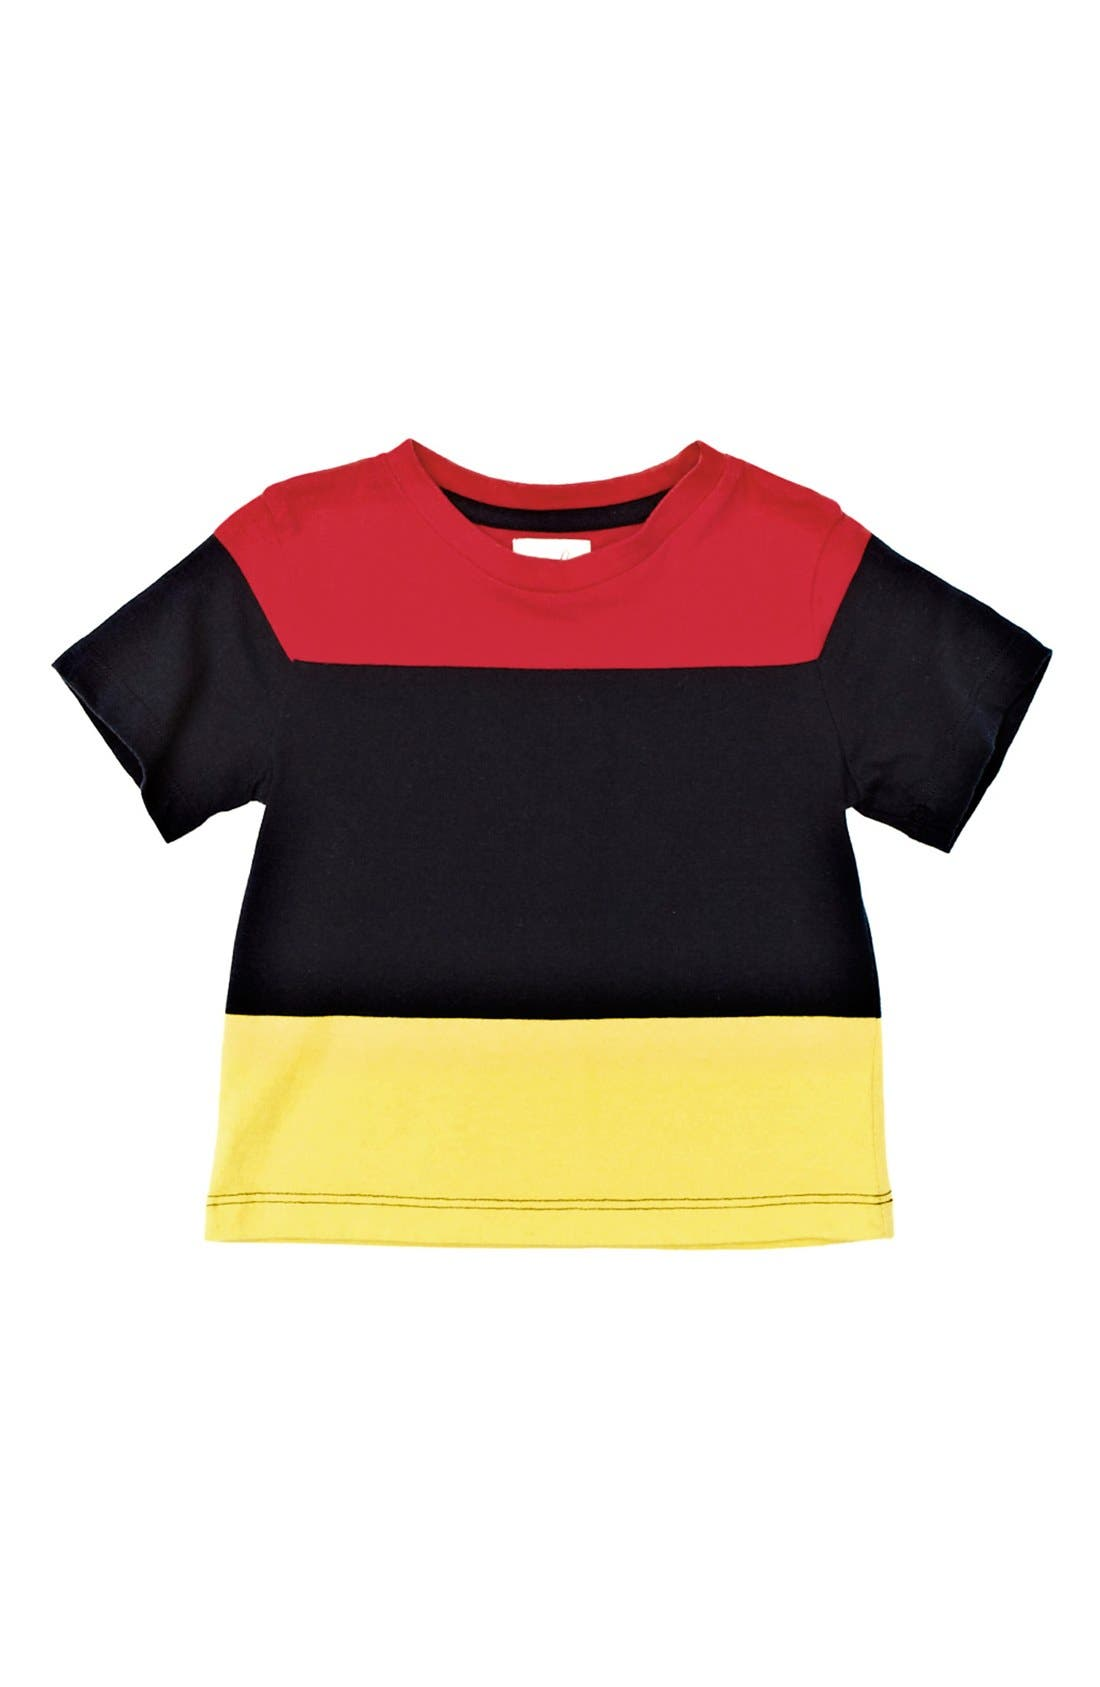 Alternate Image 1 Selected - Peek Colorblock T-Shirt (Baby Boys)